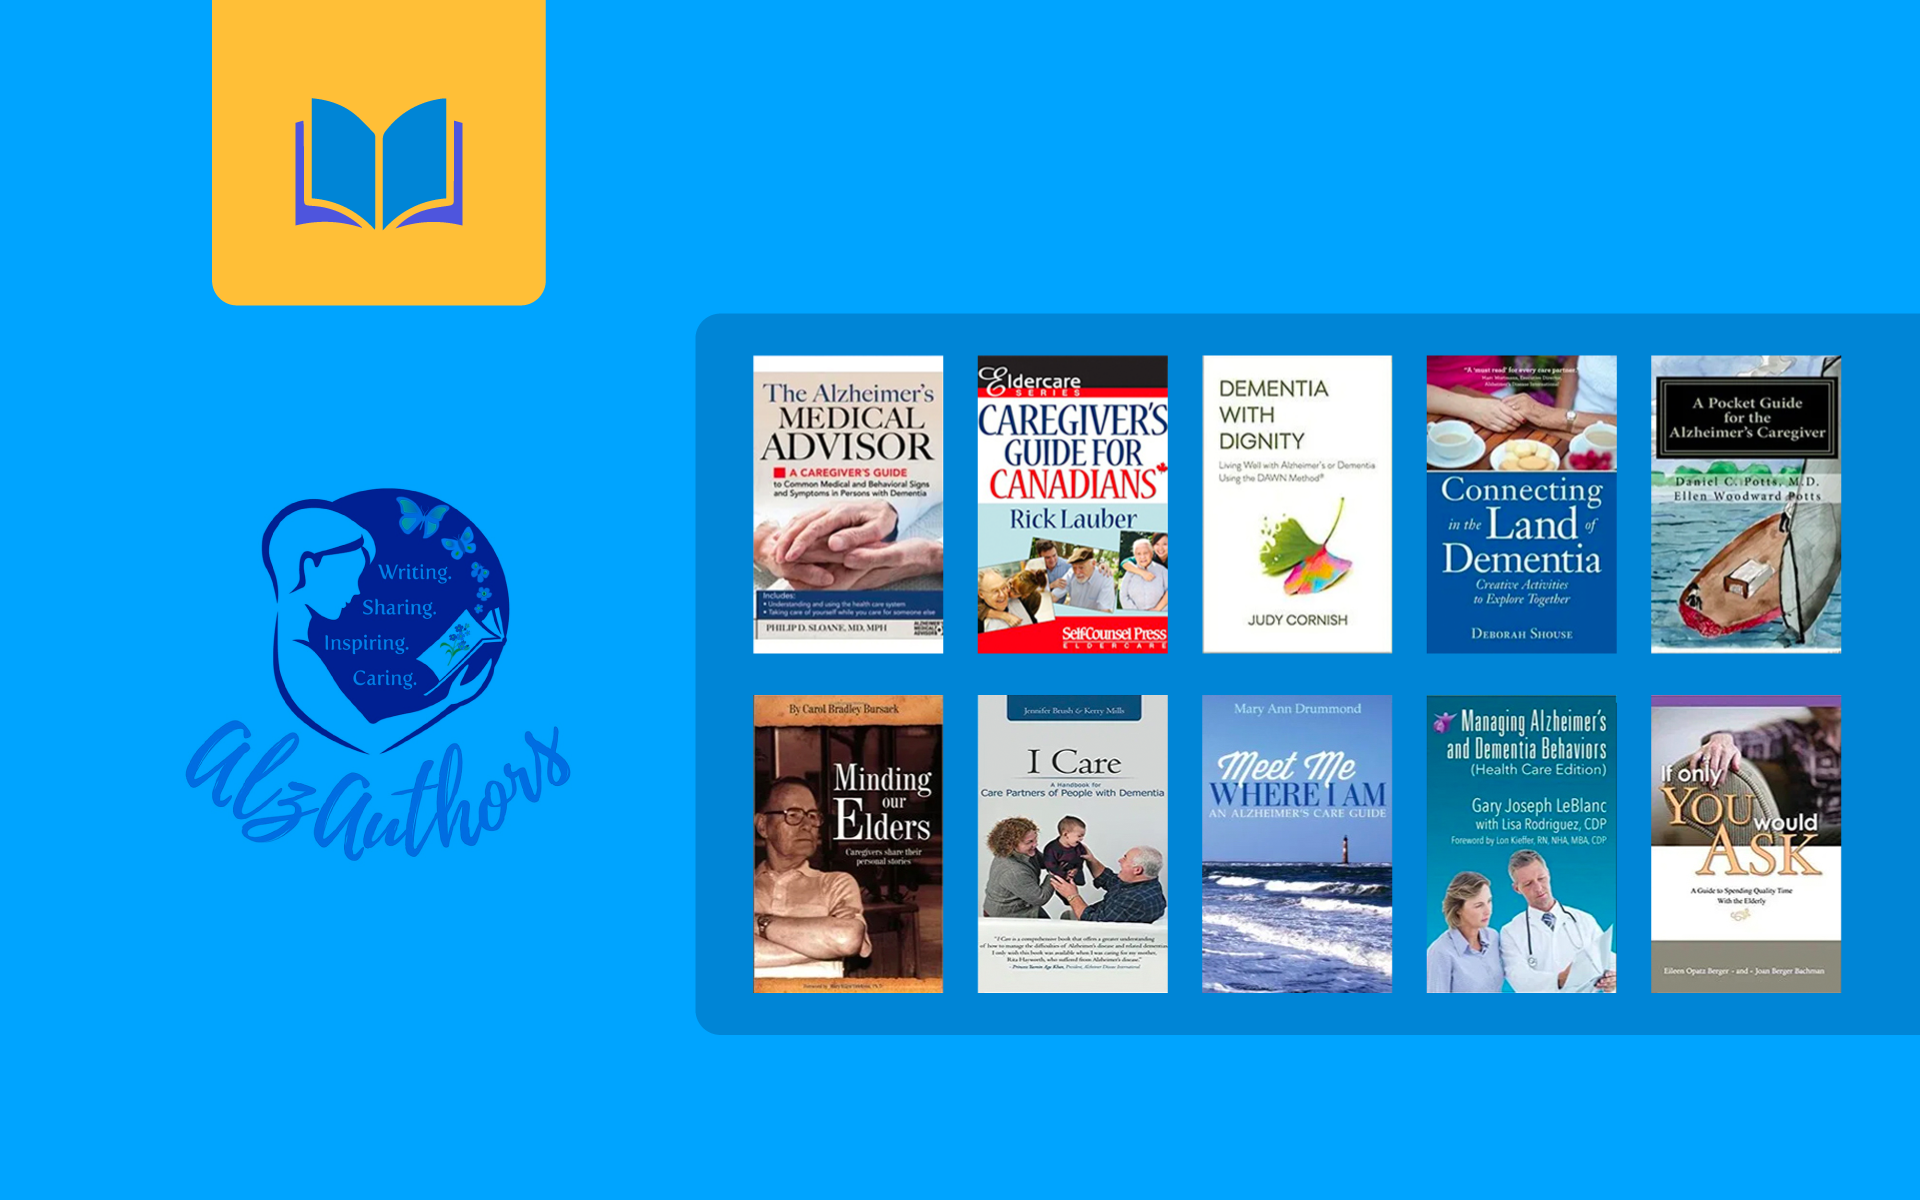 Image showing thumbnails of 10 books to support alzheimer's and dementia caregivers